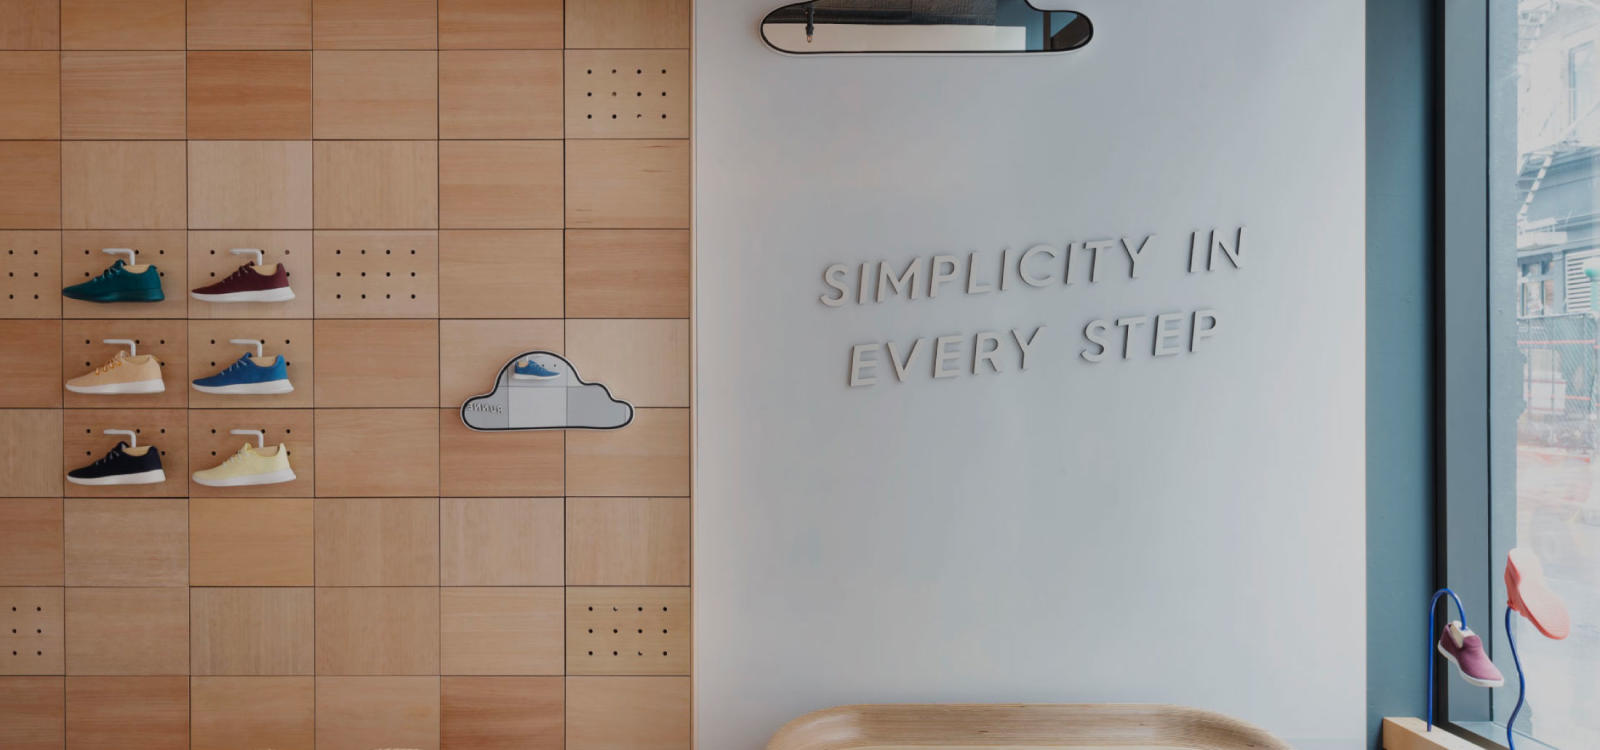 wall in allbirds shop that says 'simplicity in every step', shoe display